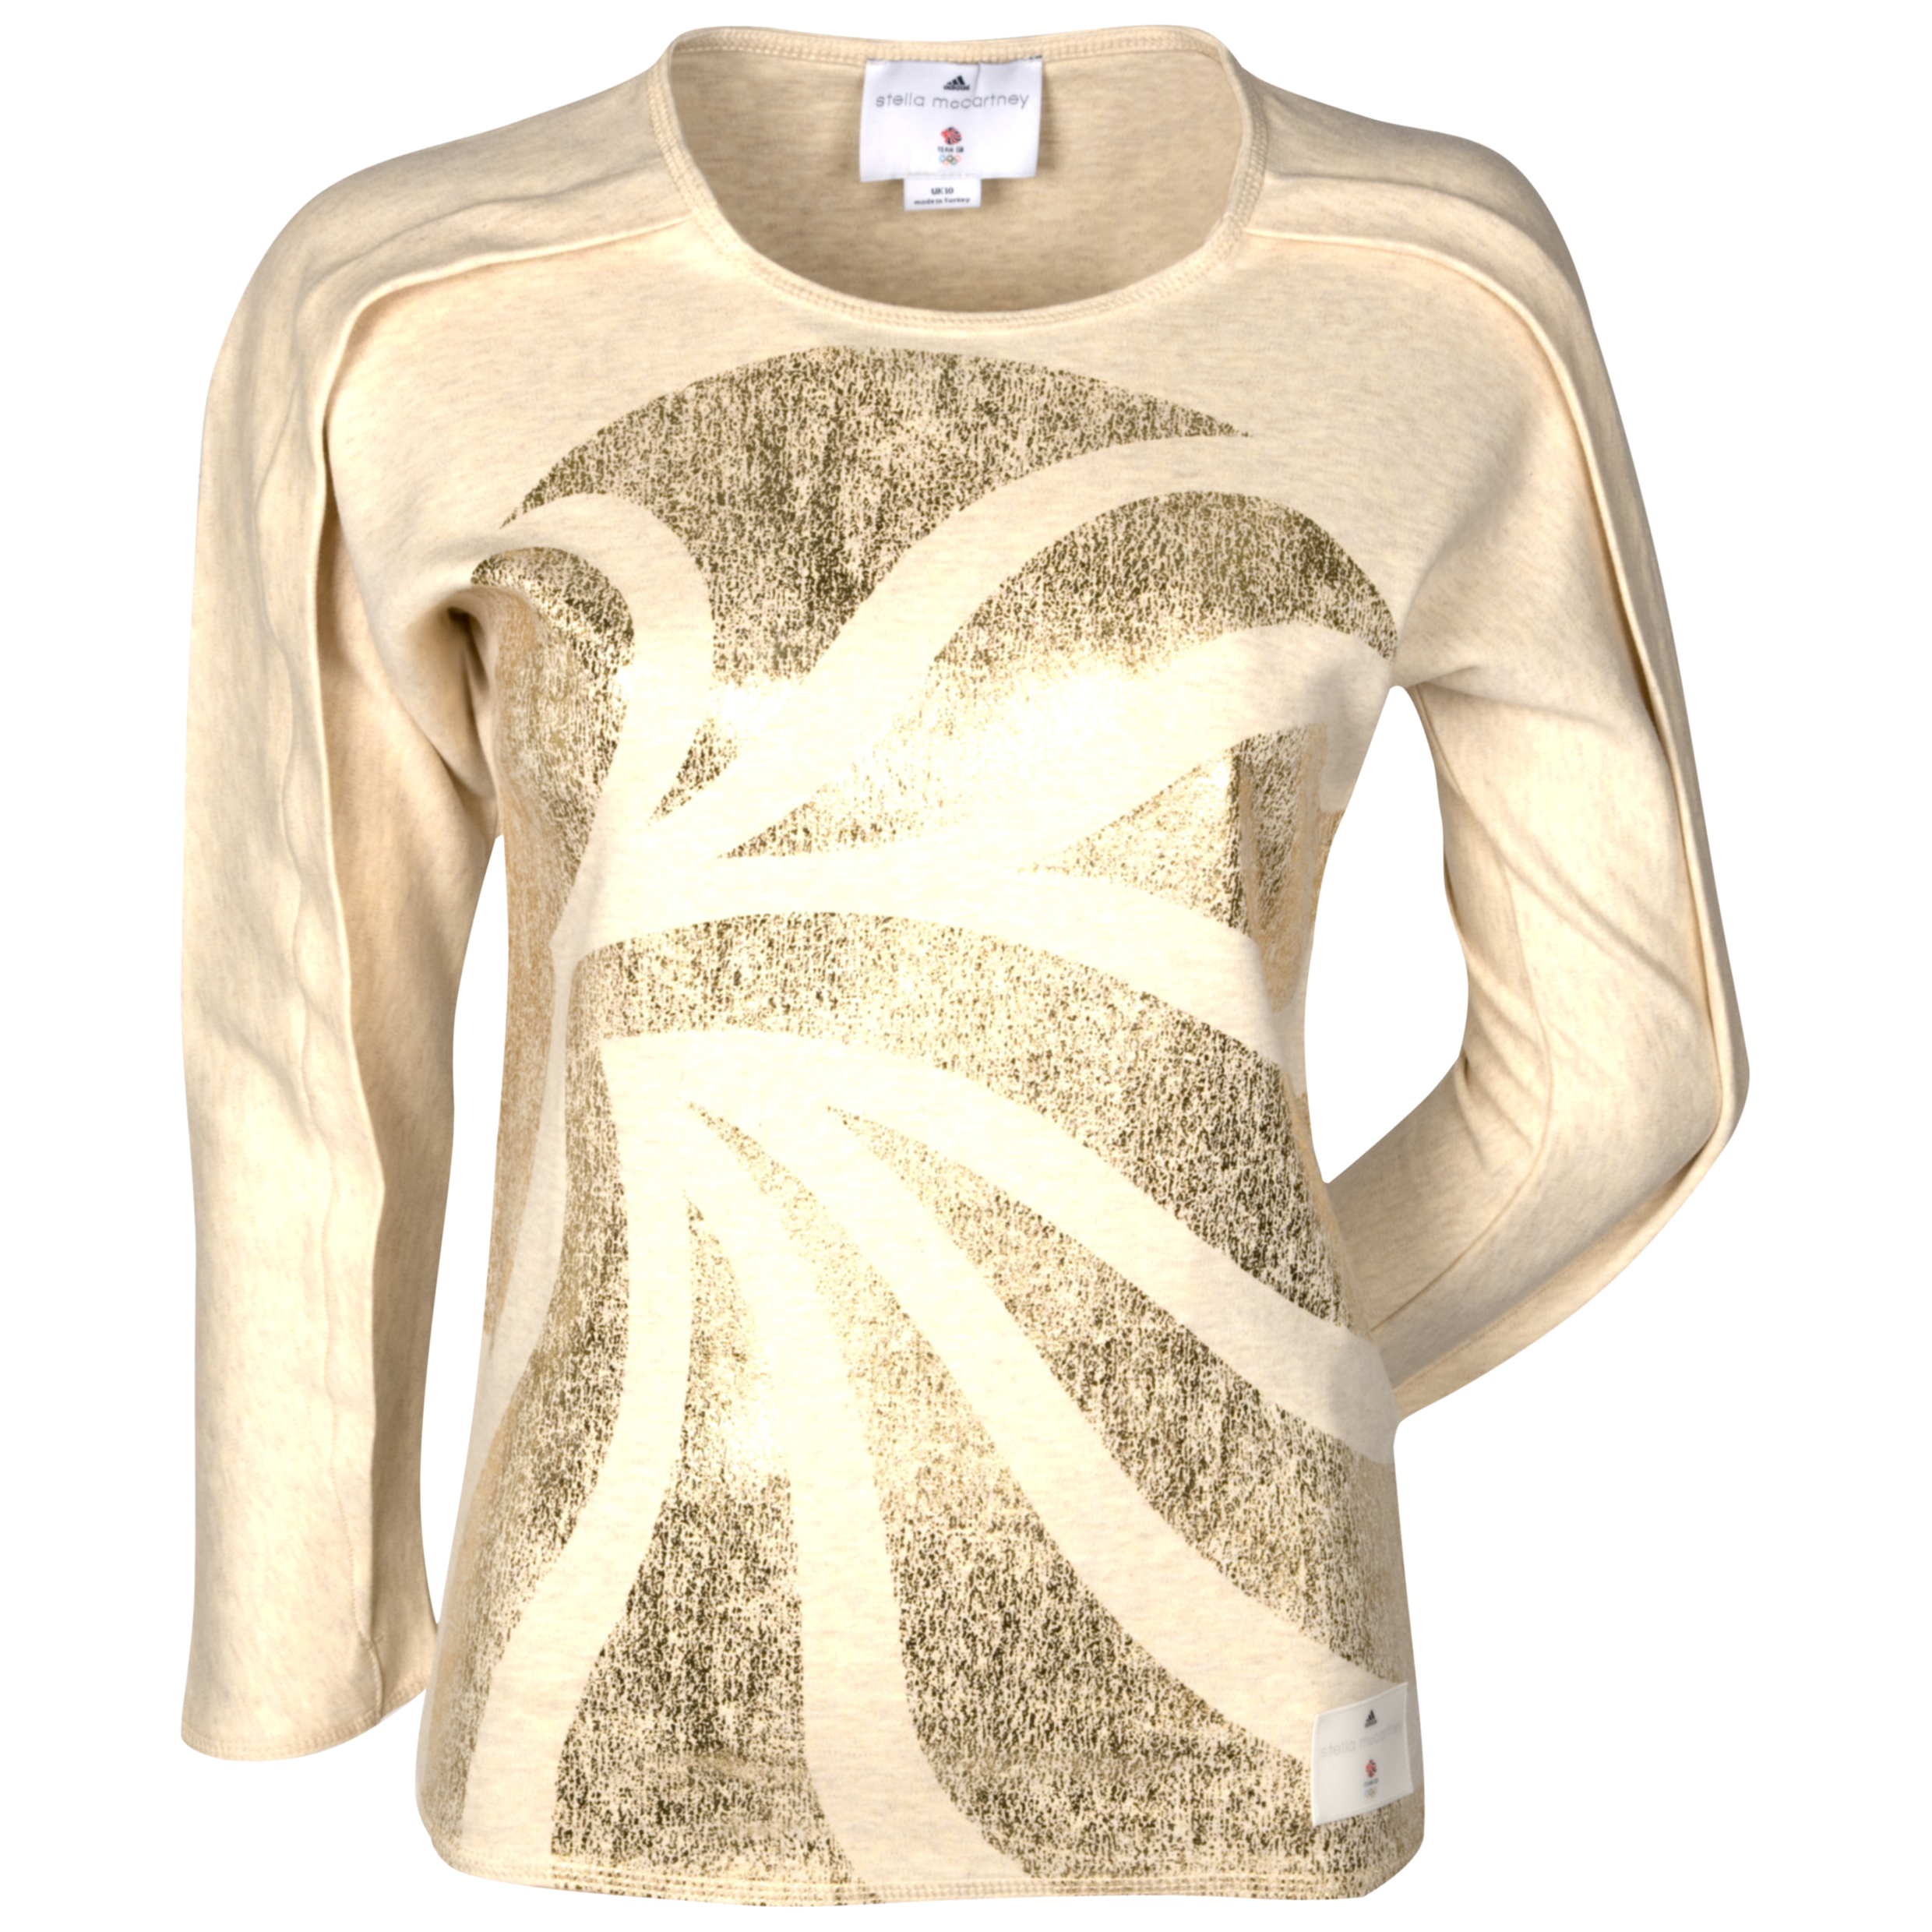 adidas Team GB Gold 3/4 Sleeve Top - Sandcastle Melange/Metal Gold - Womens